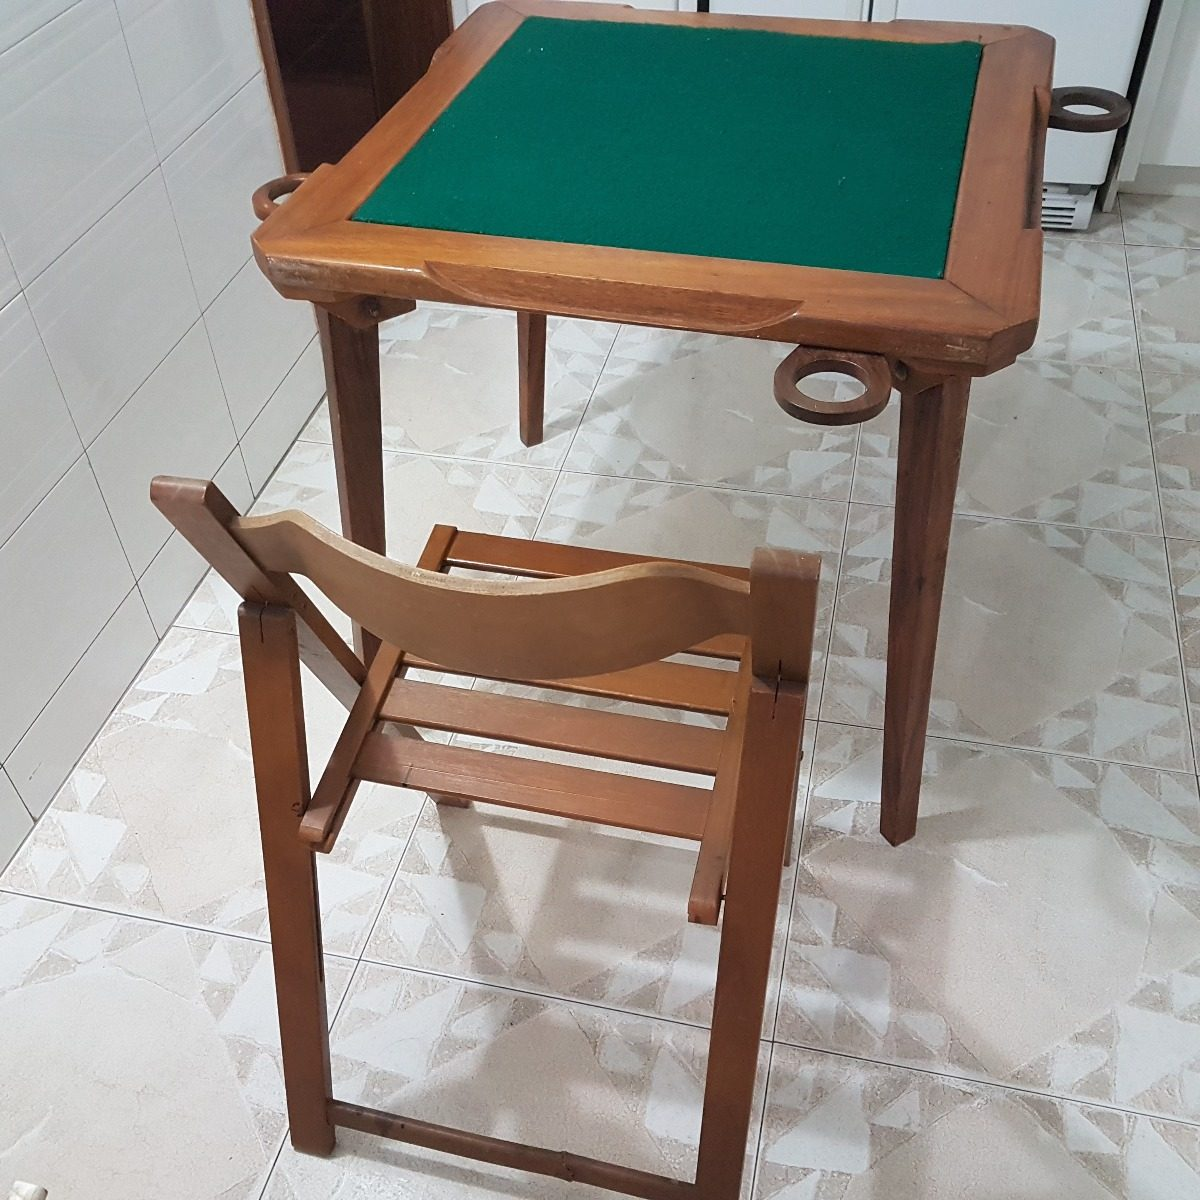 Mesa de madera plegable para jugar domino con sus 4 sillas for Mesa plegable 4 sillas